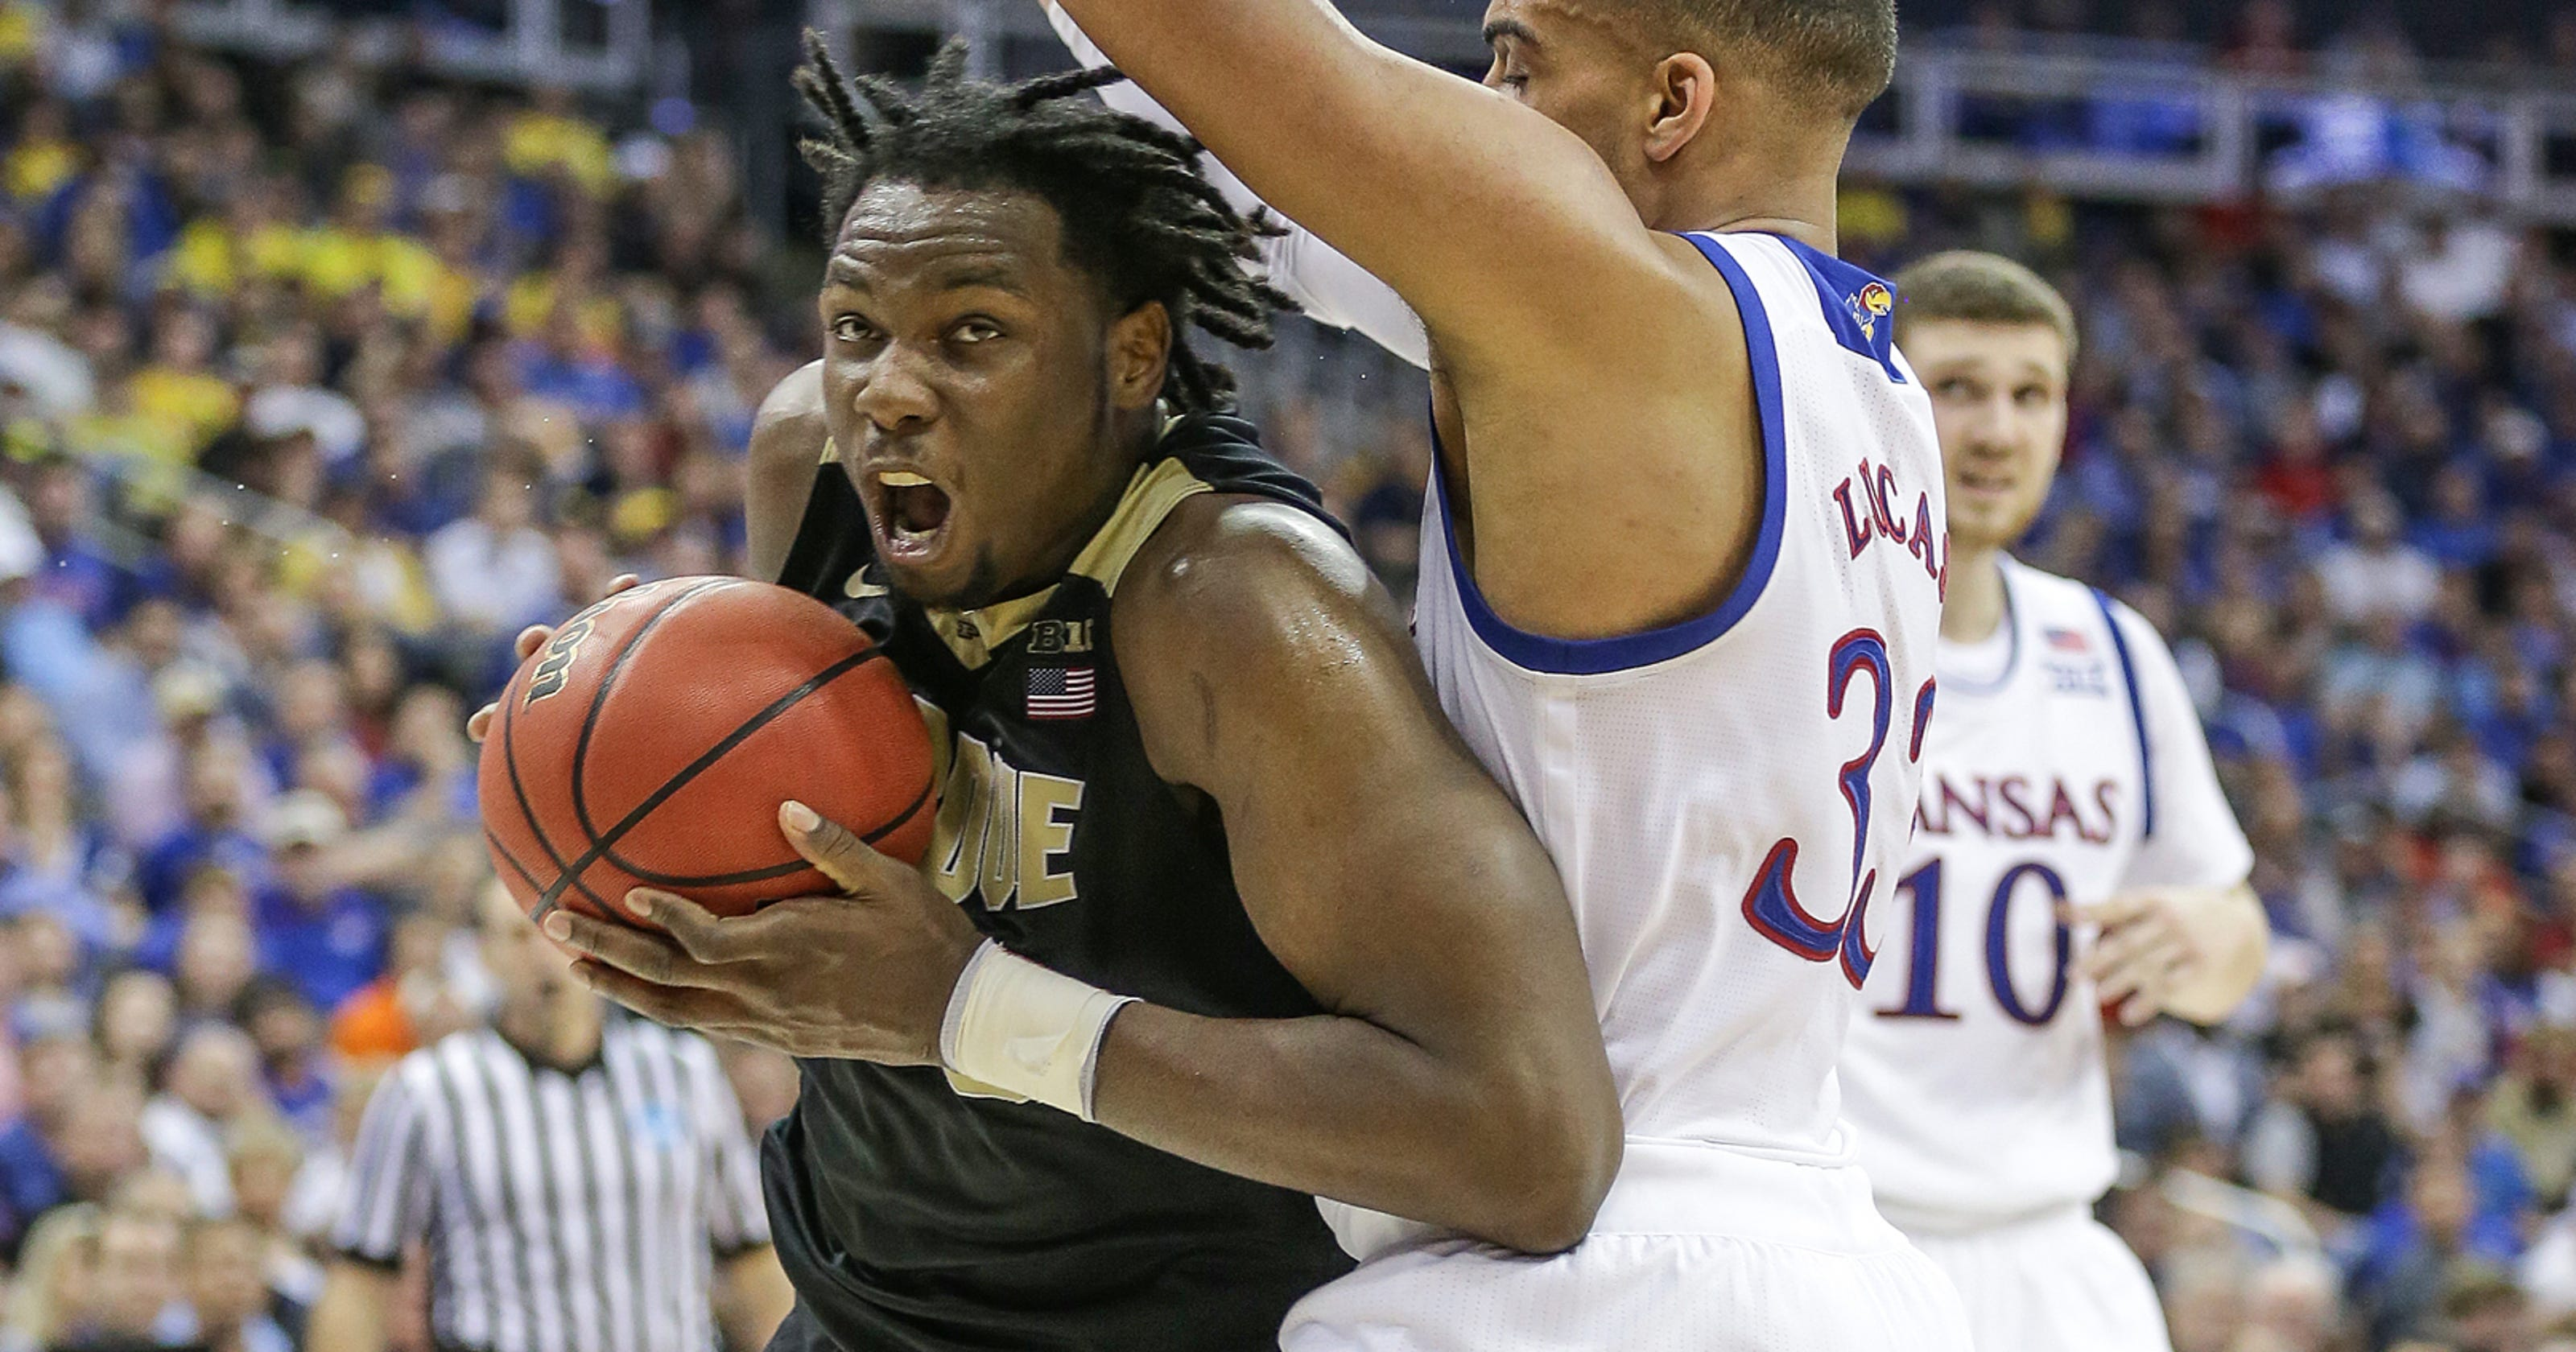 652adf32fbab Caleb Swanigan jabs IU in NBA announcement